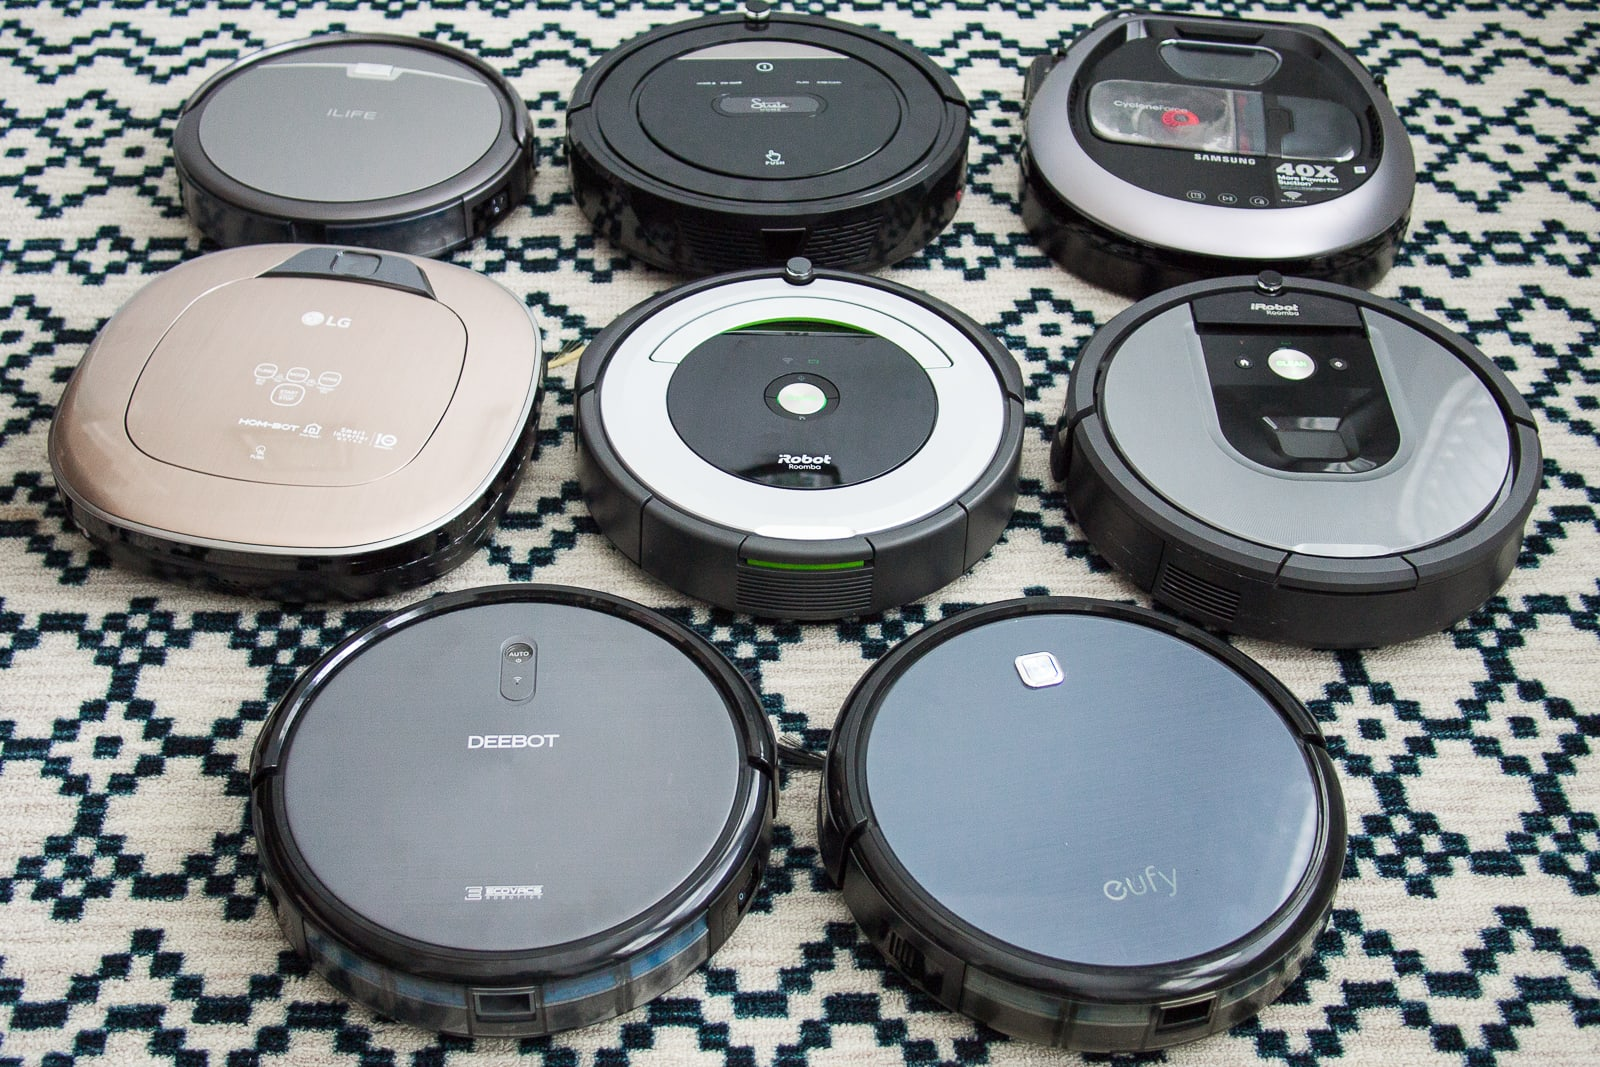 Alexa-compatible smart home devices